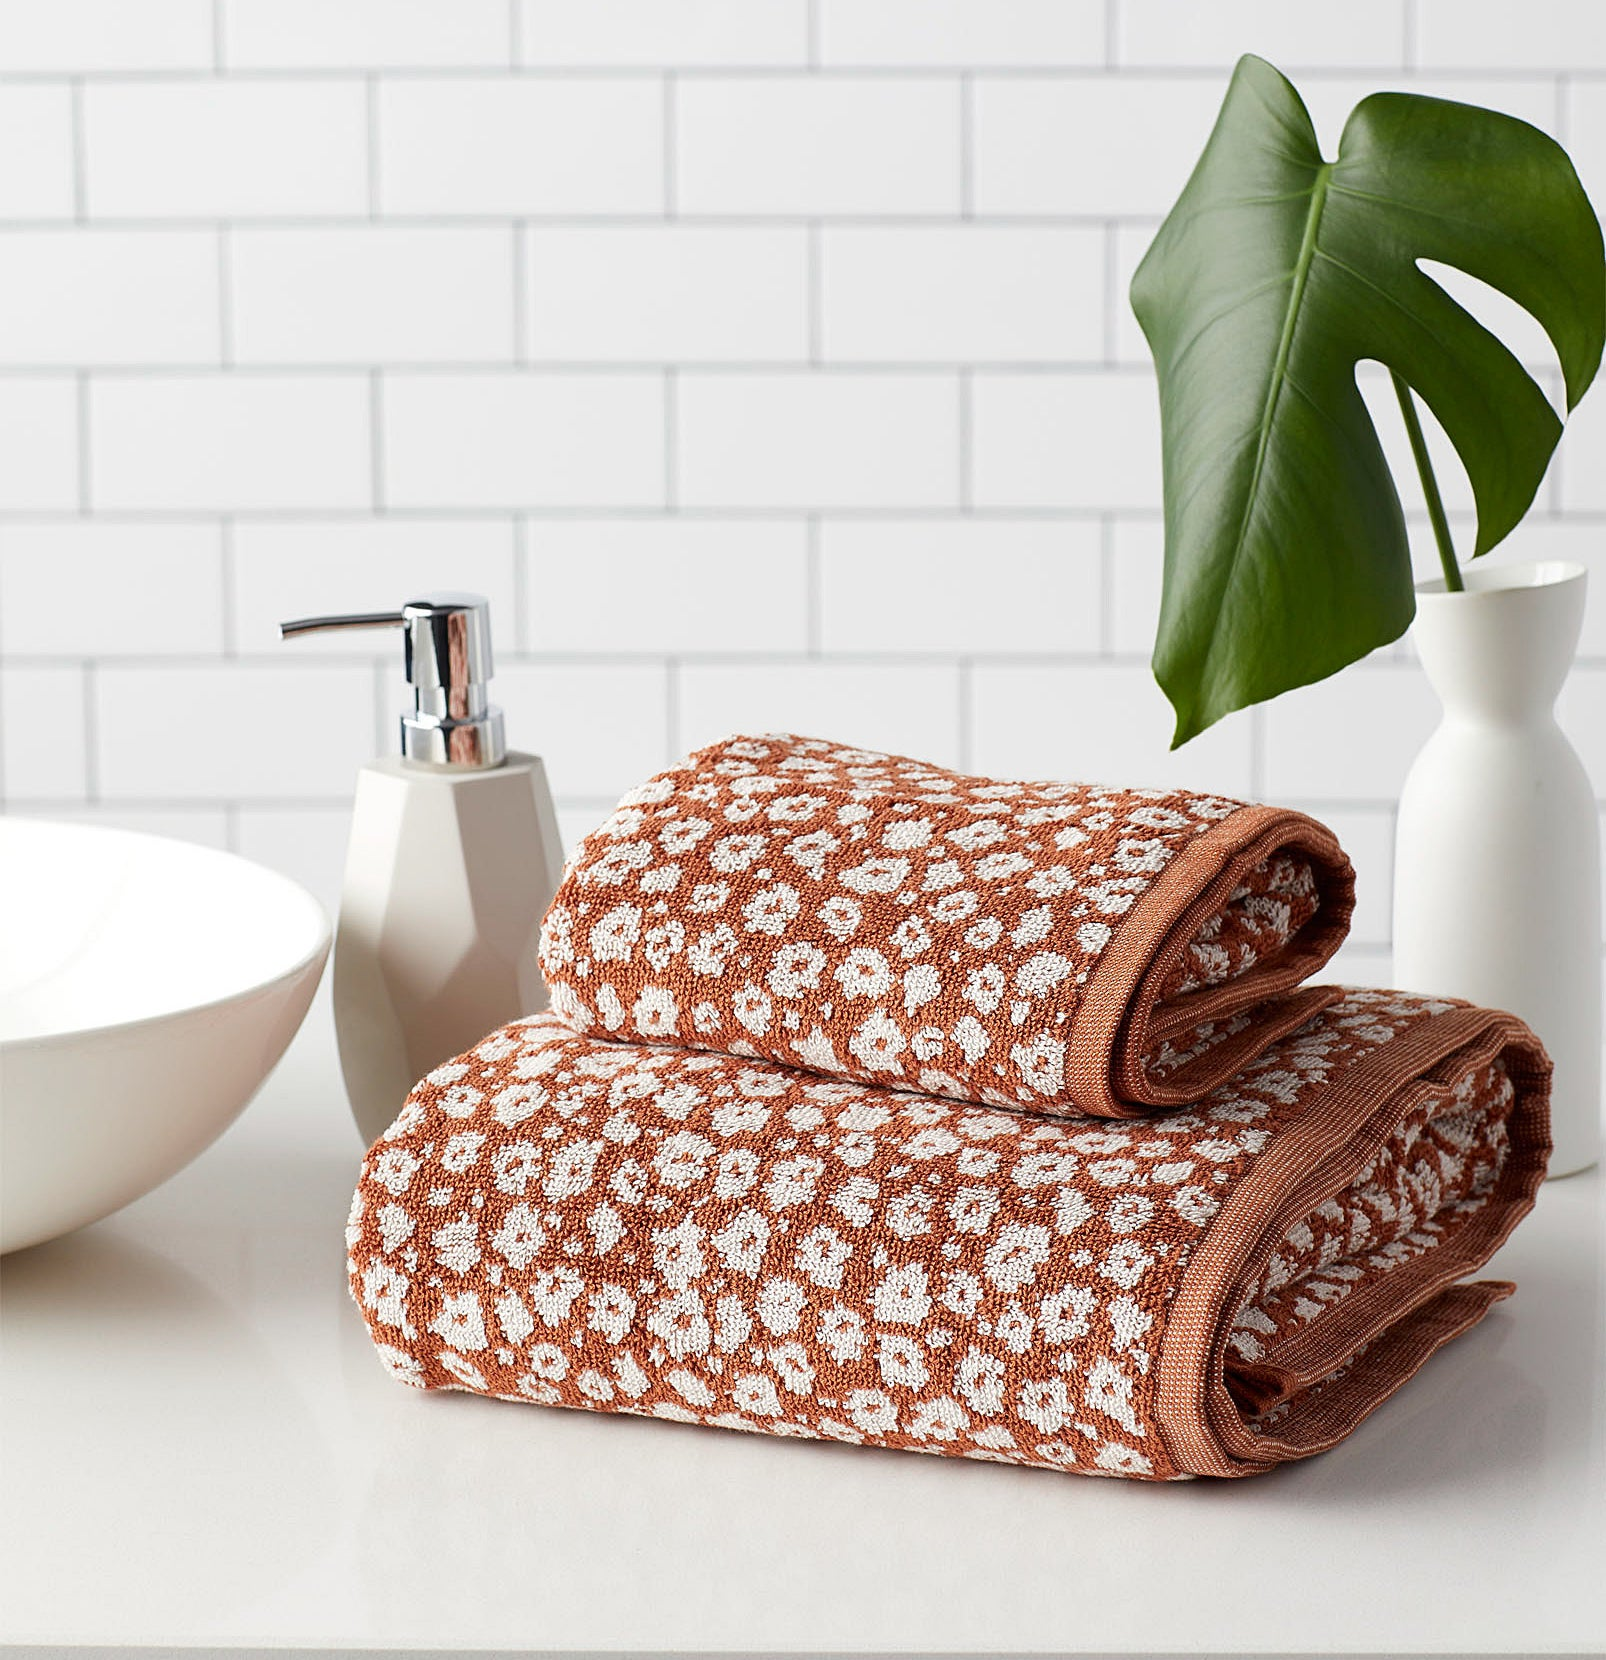 Two towels (one hand and one bath) stacked together in a clean bathroom